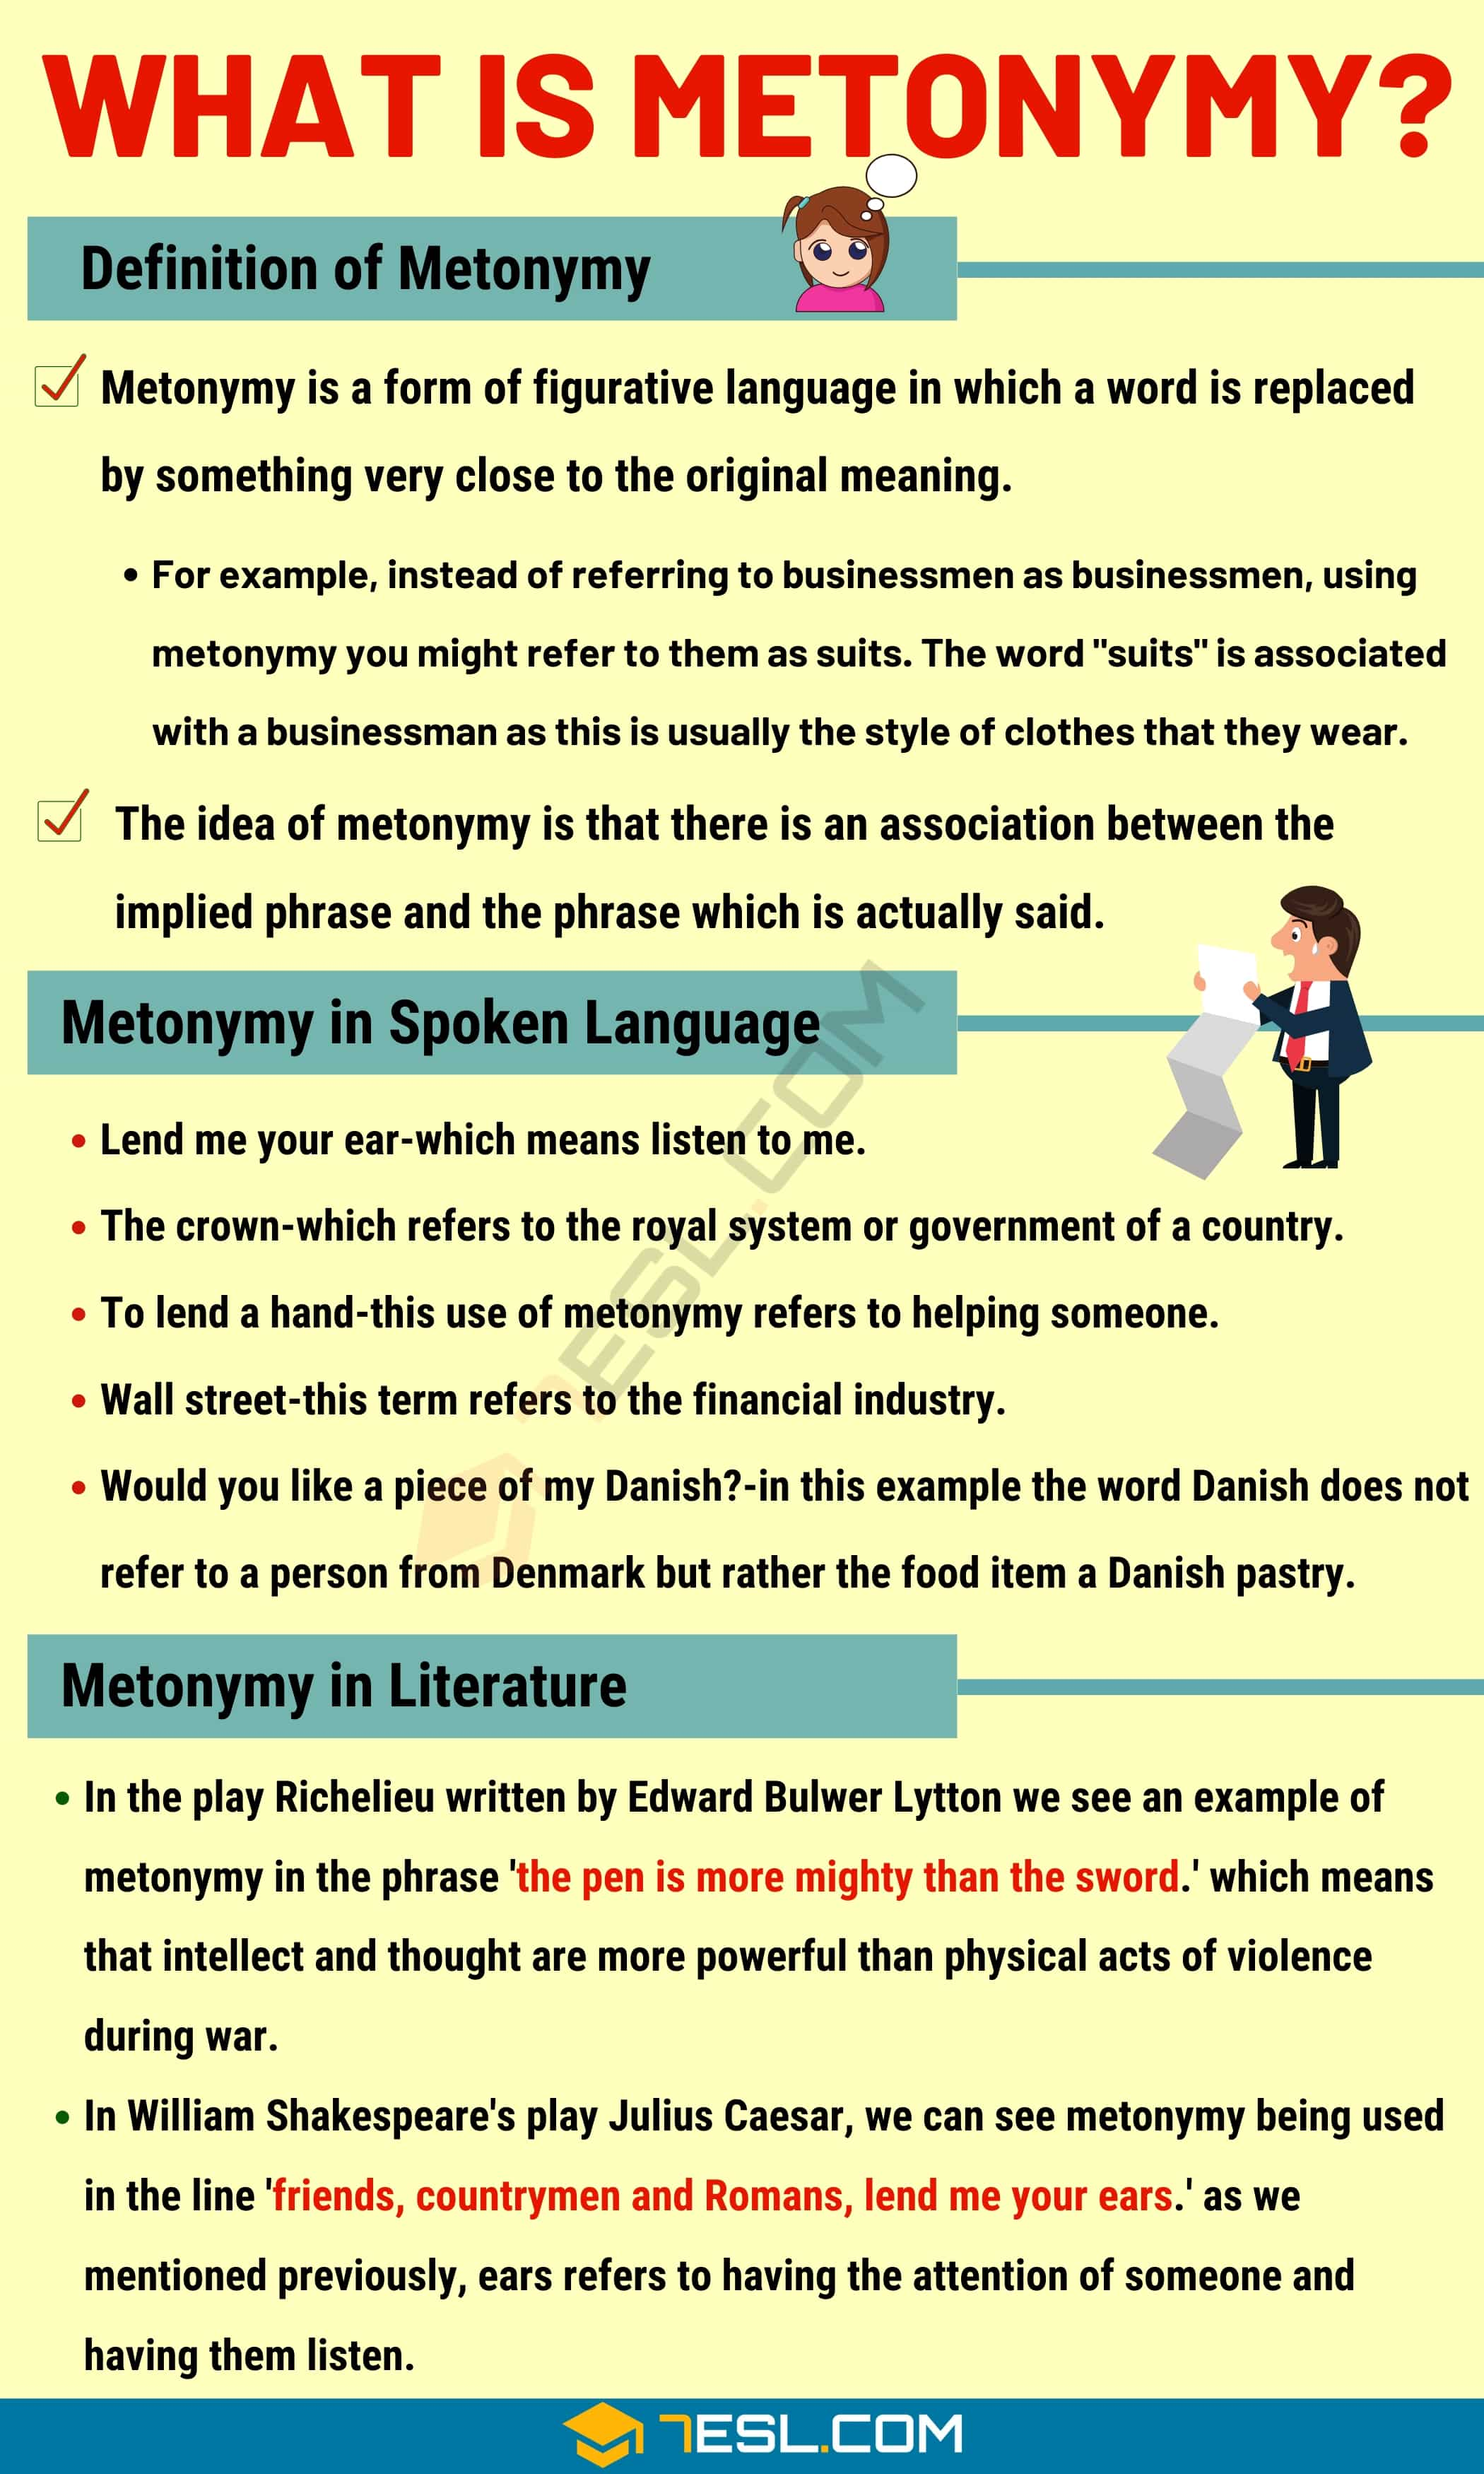 Metonymy: Definition with Useful Examples in Spoken Language & Literature